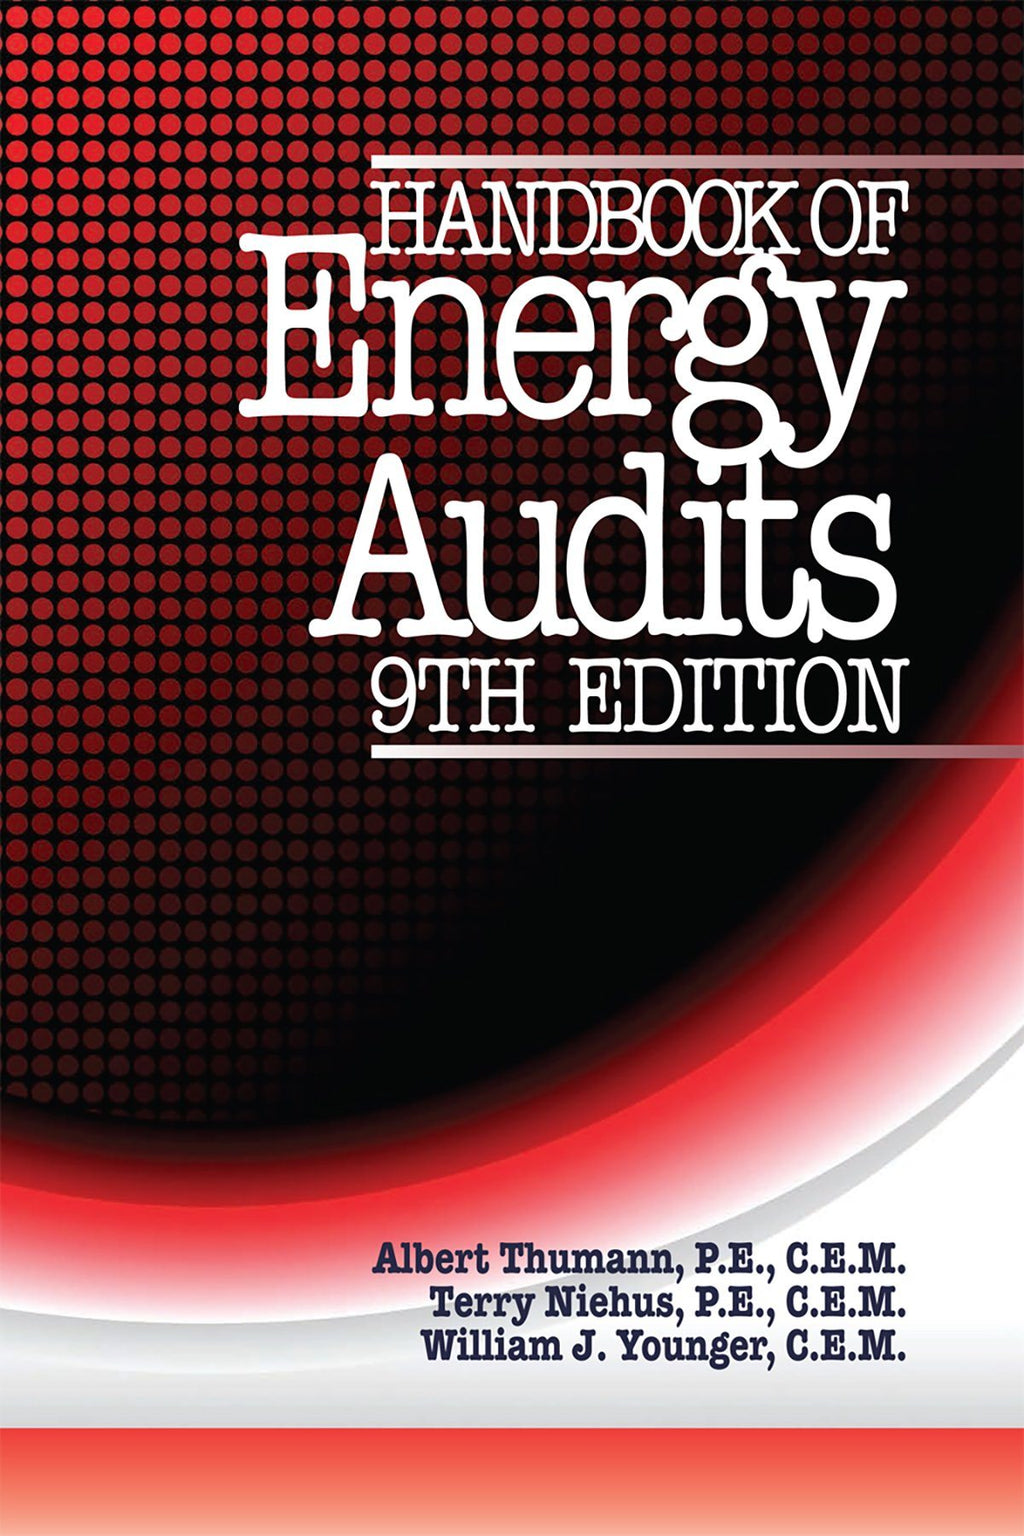 Handbook Of Energy Audits, 9th Edition - AEE Programs